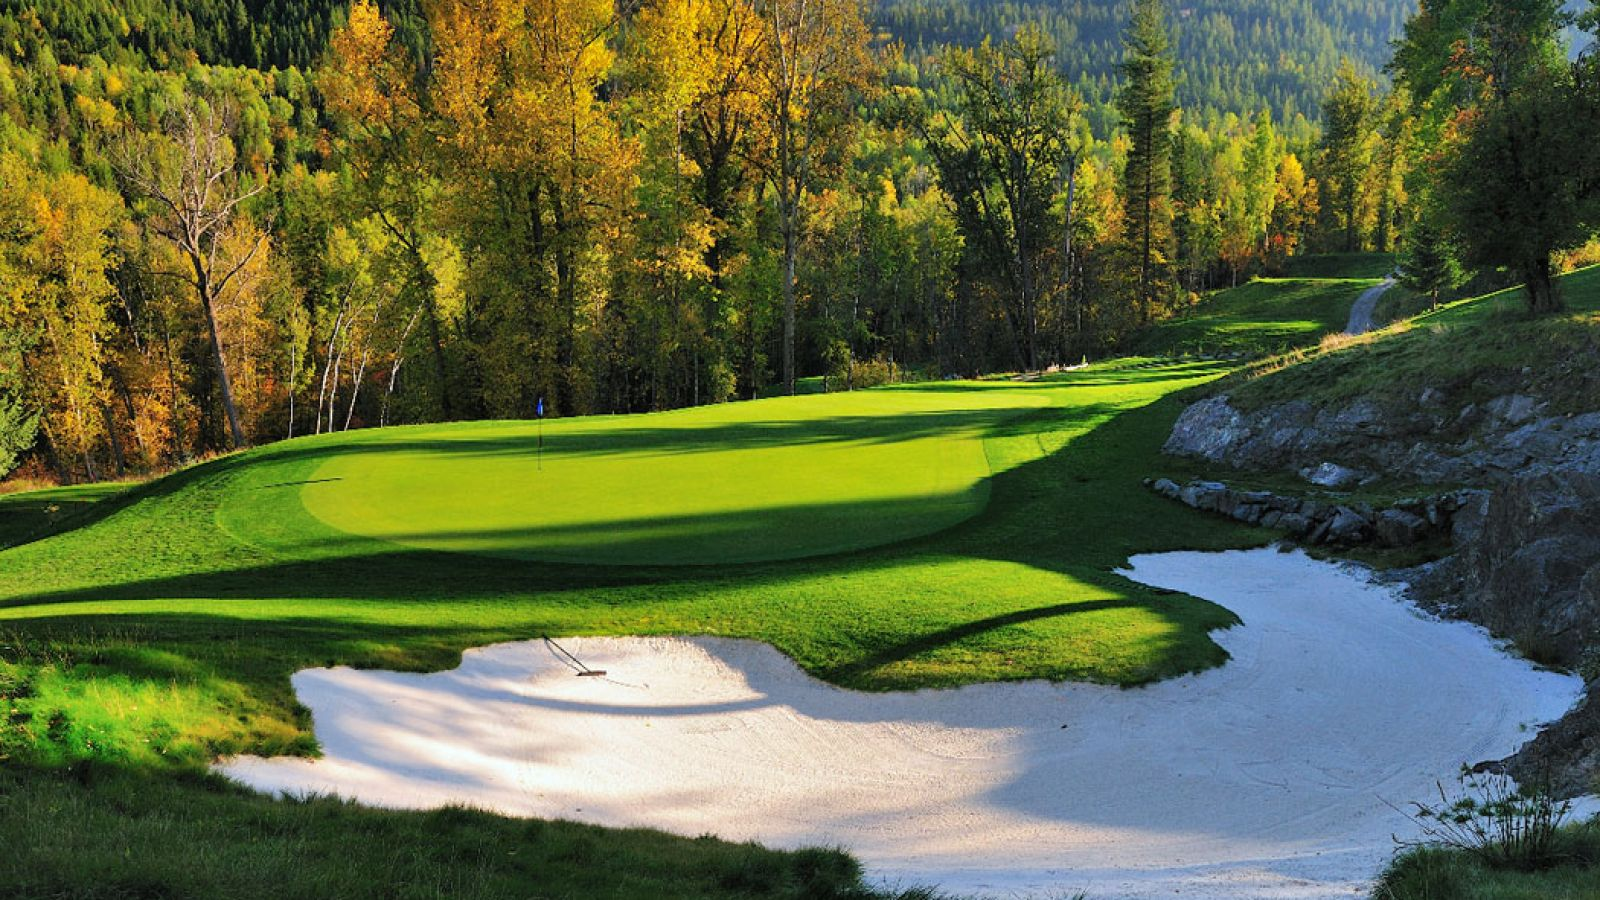 Fall is a great time of year to golf.